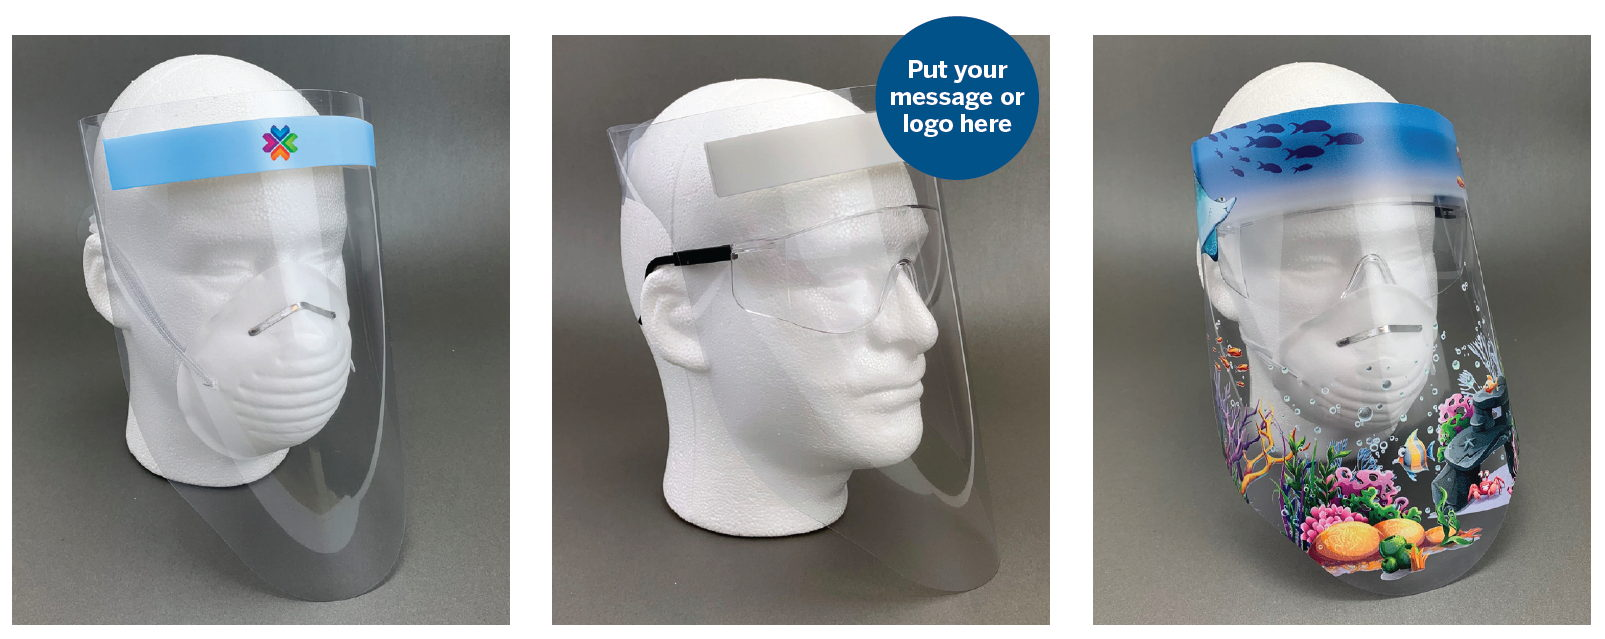 Top 9 2020 - Face Shields